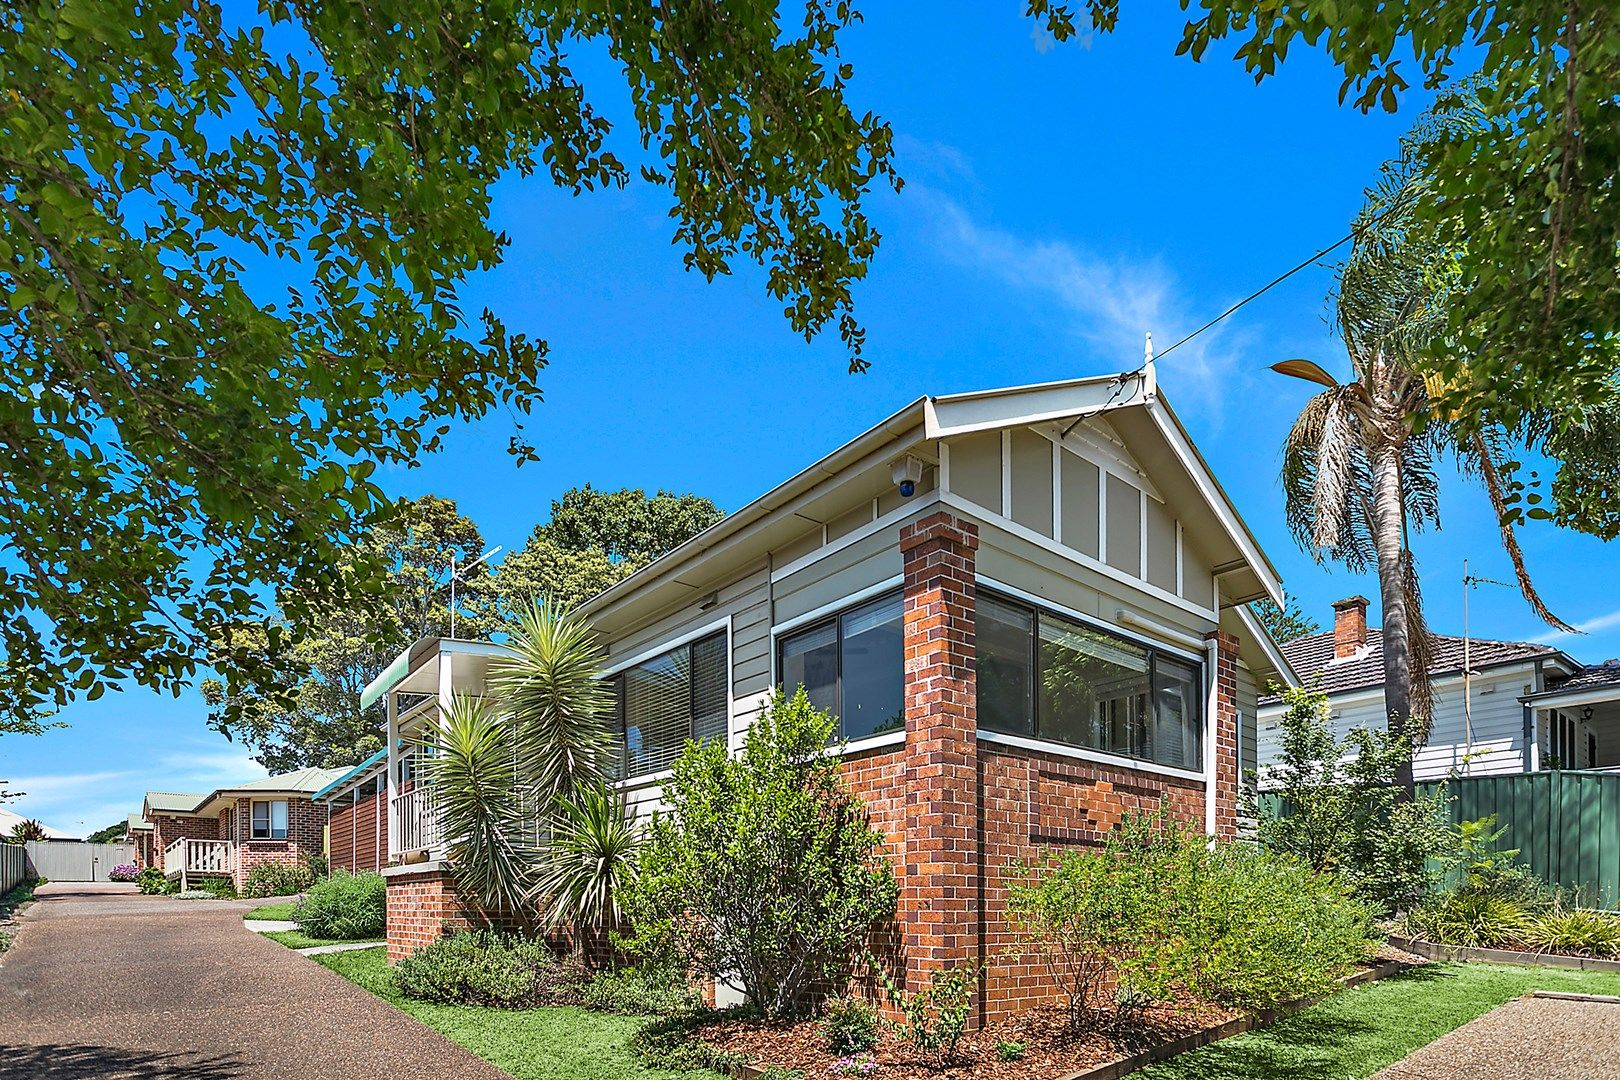 1/11 Dempster Street, West Wollongong NSW 2500, Image 0